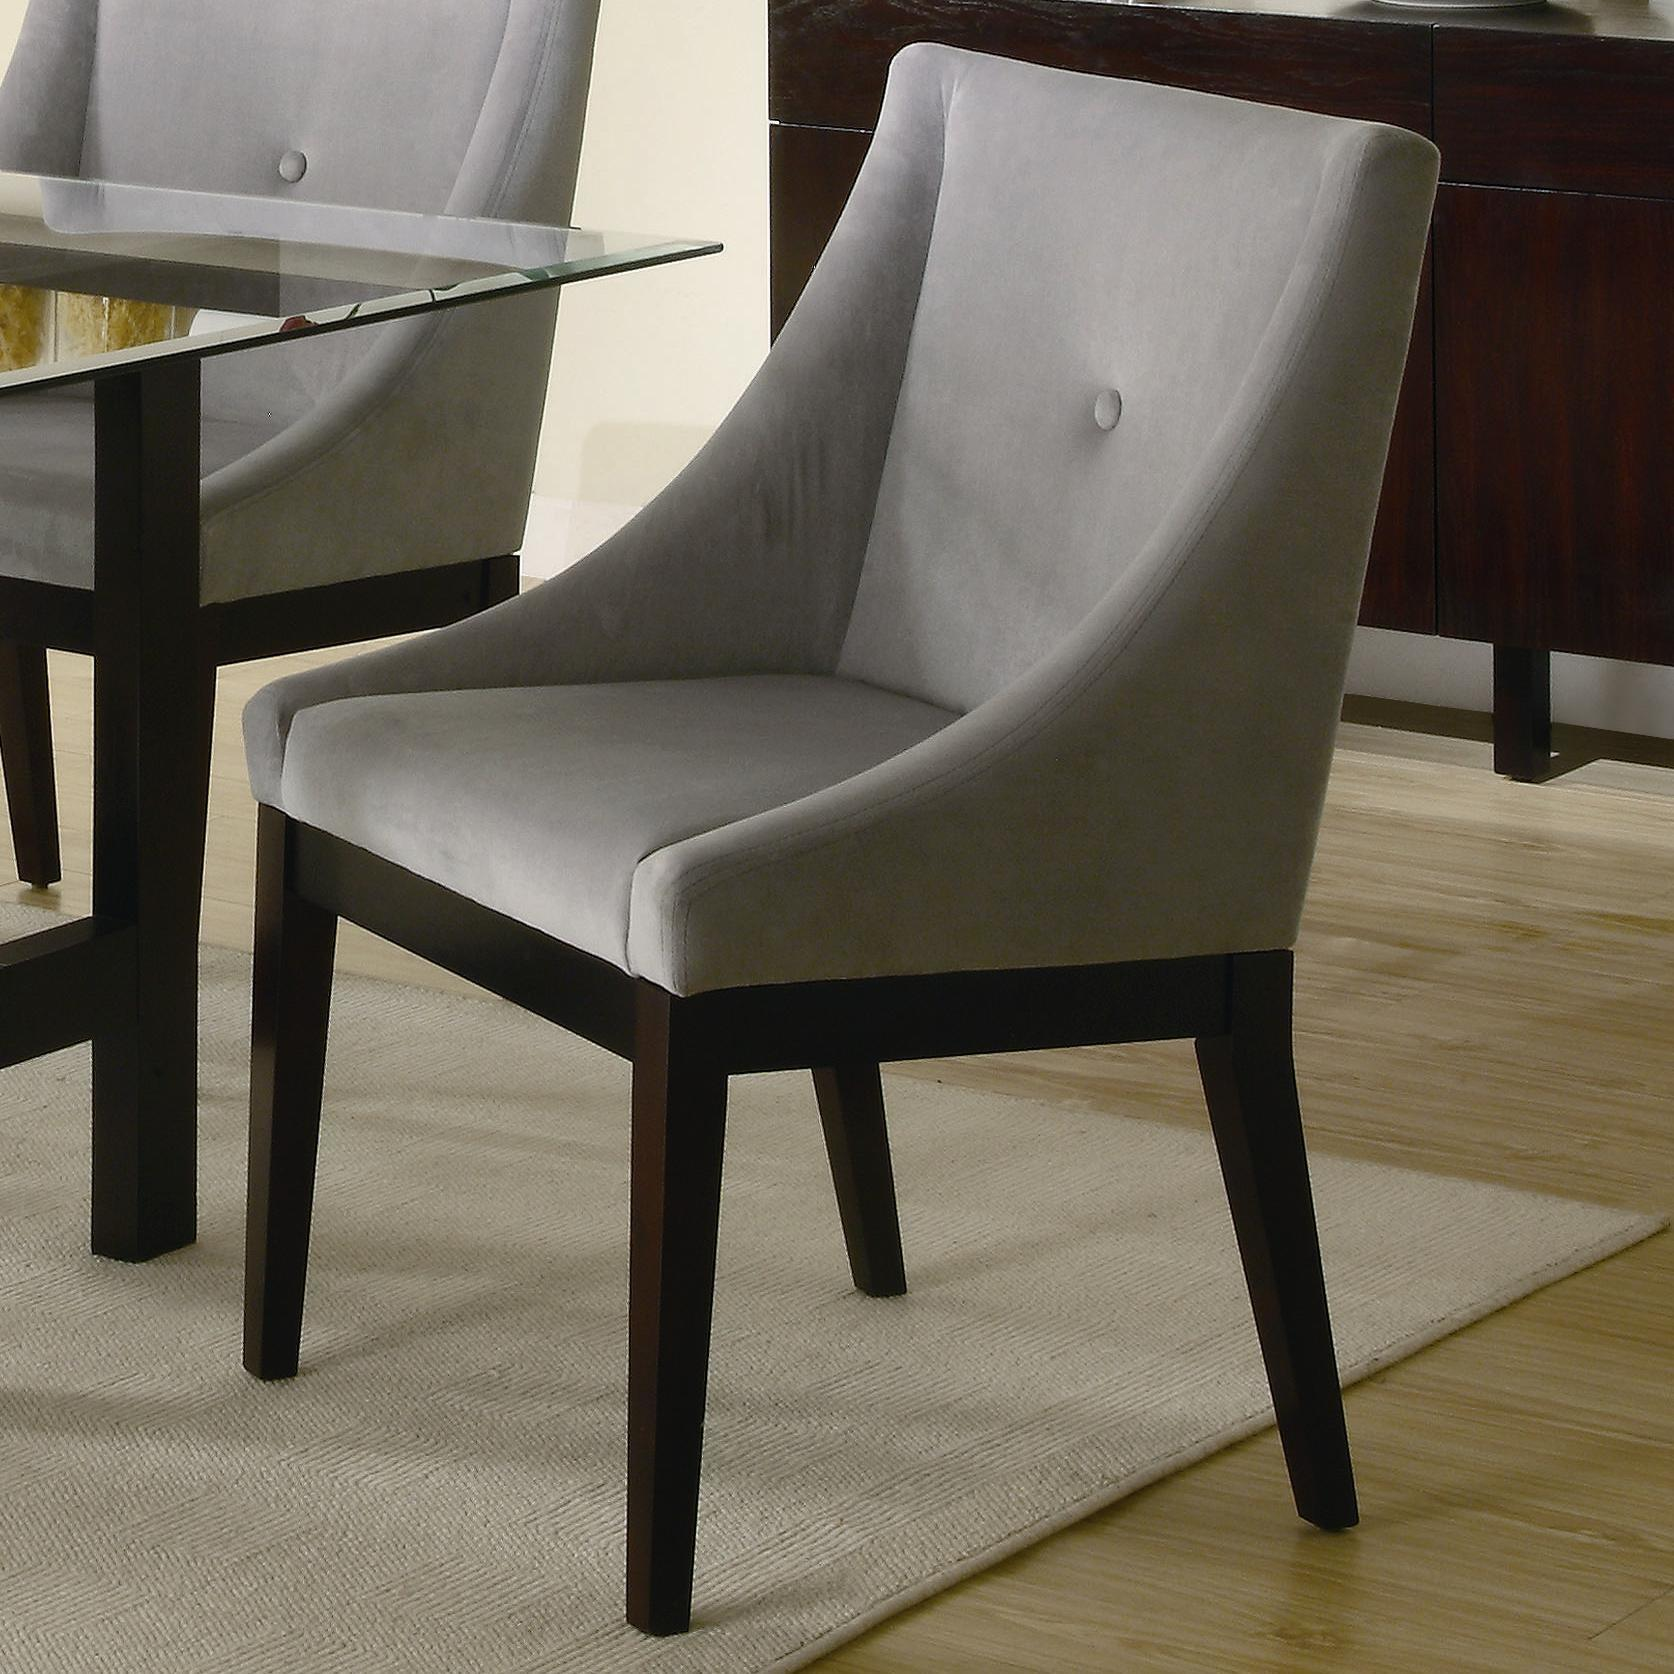 Living Room Dining Table Chairs Armchair Design